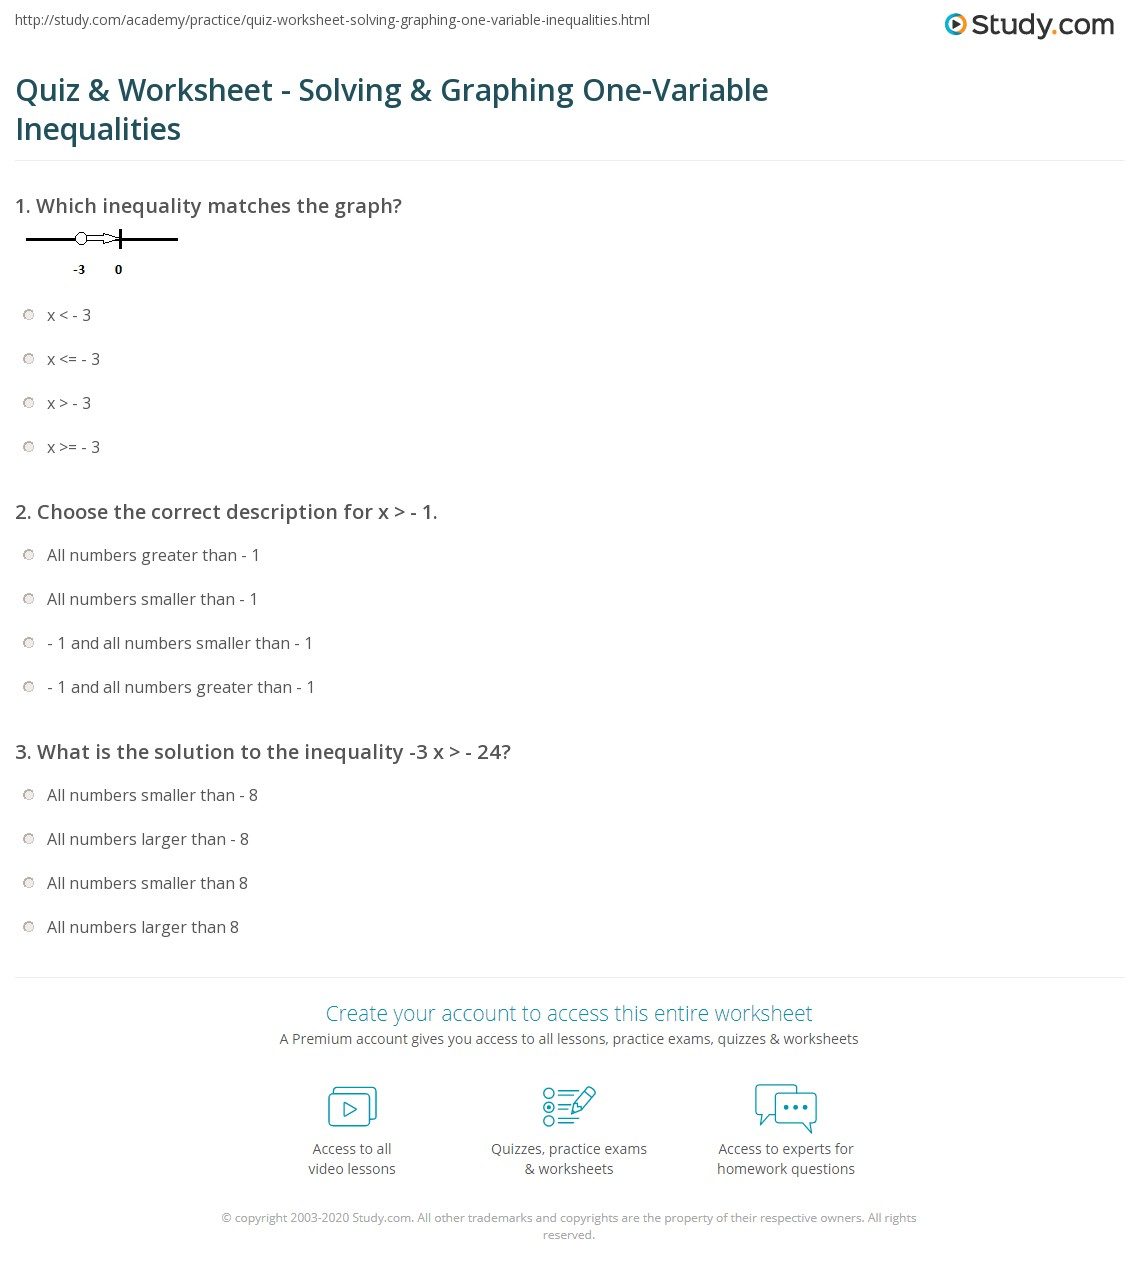 Inequalities Worksheets moreover solving graphing inequalities math – cineencontraste club further Standard form Equation Of A Circle Worksheet Answers Elegant solving moreover  also Solving Inequalities Worksheet Pdf Math Solving And Graphing Linear besides Unique solving and Graphing Inequalities Worksheet   Cedric VB together with Graphs Of Inequalities Math Like A Linear Equation In Two Variables likewise Pre Alge Worksheets   Inequalities Worksheets likewise Alge  Linear Inequalities Worksheet Alge Best Of Collection together with Printables  Solving Inequalities Worksheet  Lemonlilyfestival also Concept 12  Solving Linear Inequalities furthermore Graph Inequalities Worksheet   Siteraven together with  additionally Graphing Inequalities On A Number Line Worksheet Math Similar Images additionally Kuta Infinite Algebra 2 Graphing Linear Inequalities together with . on solving and graphing inequalities worksheet